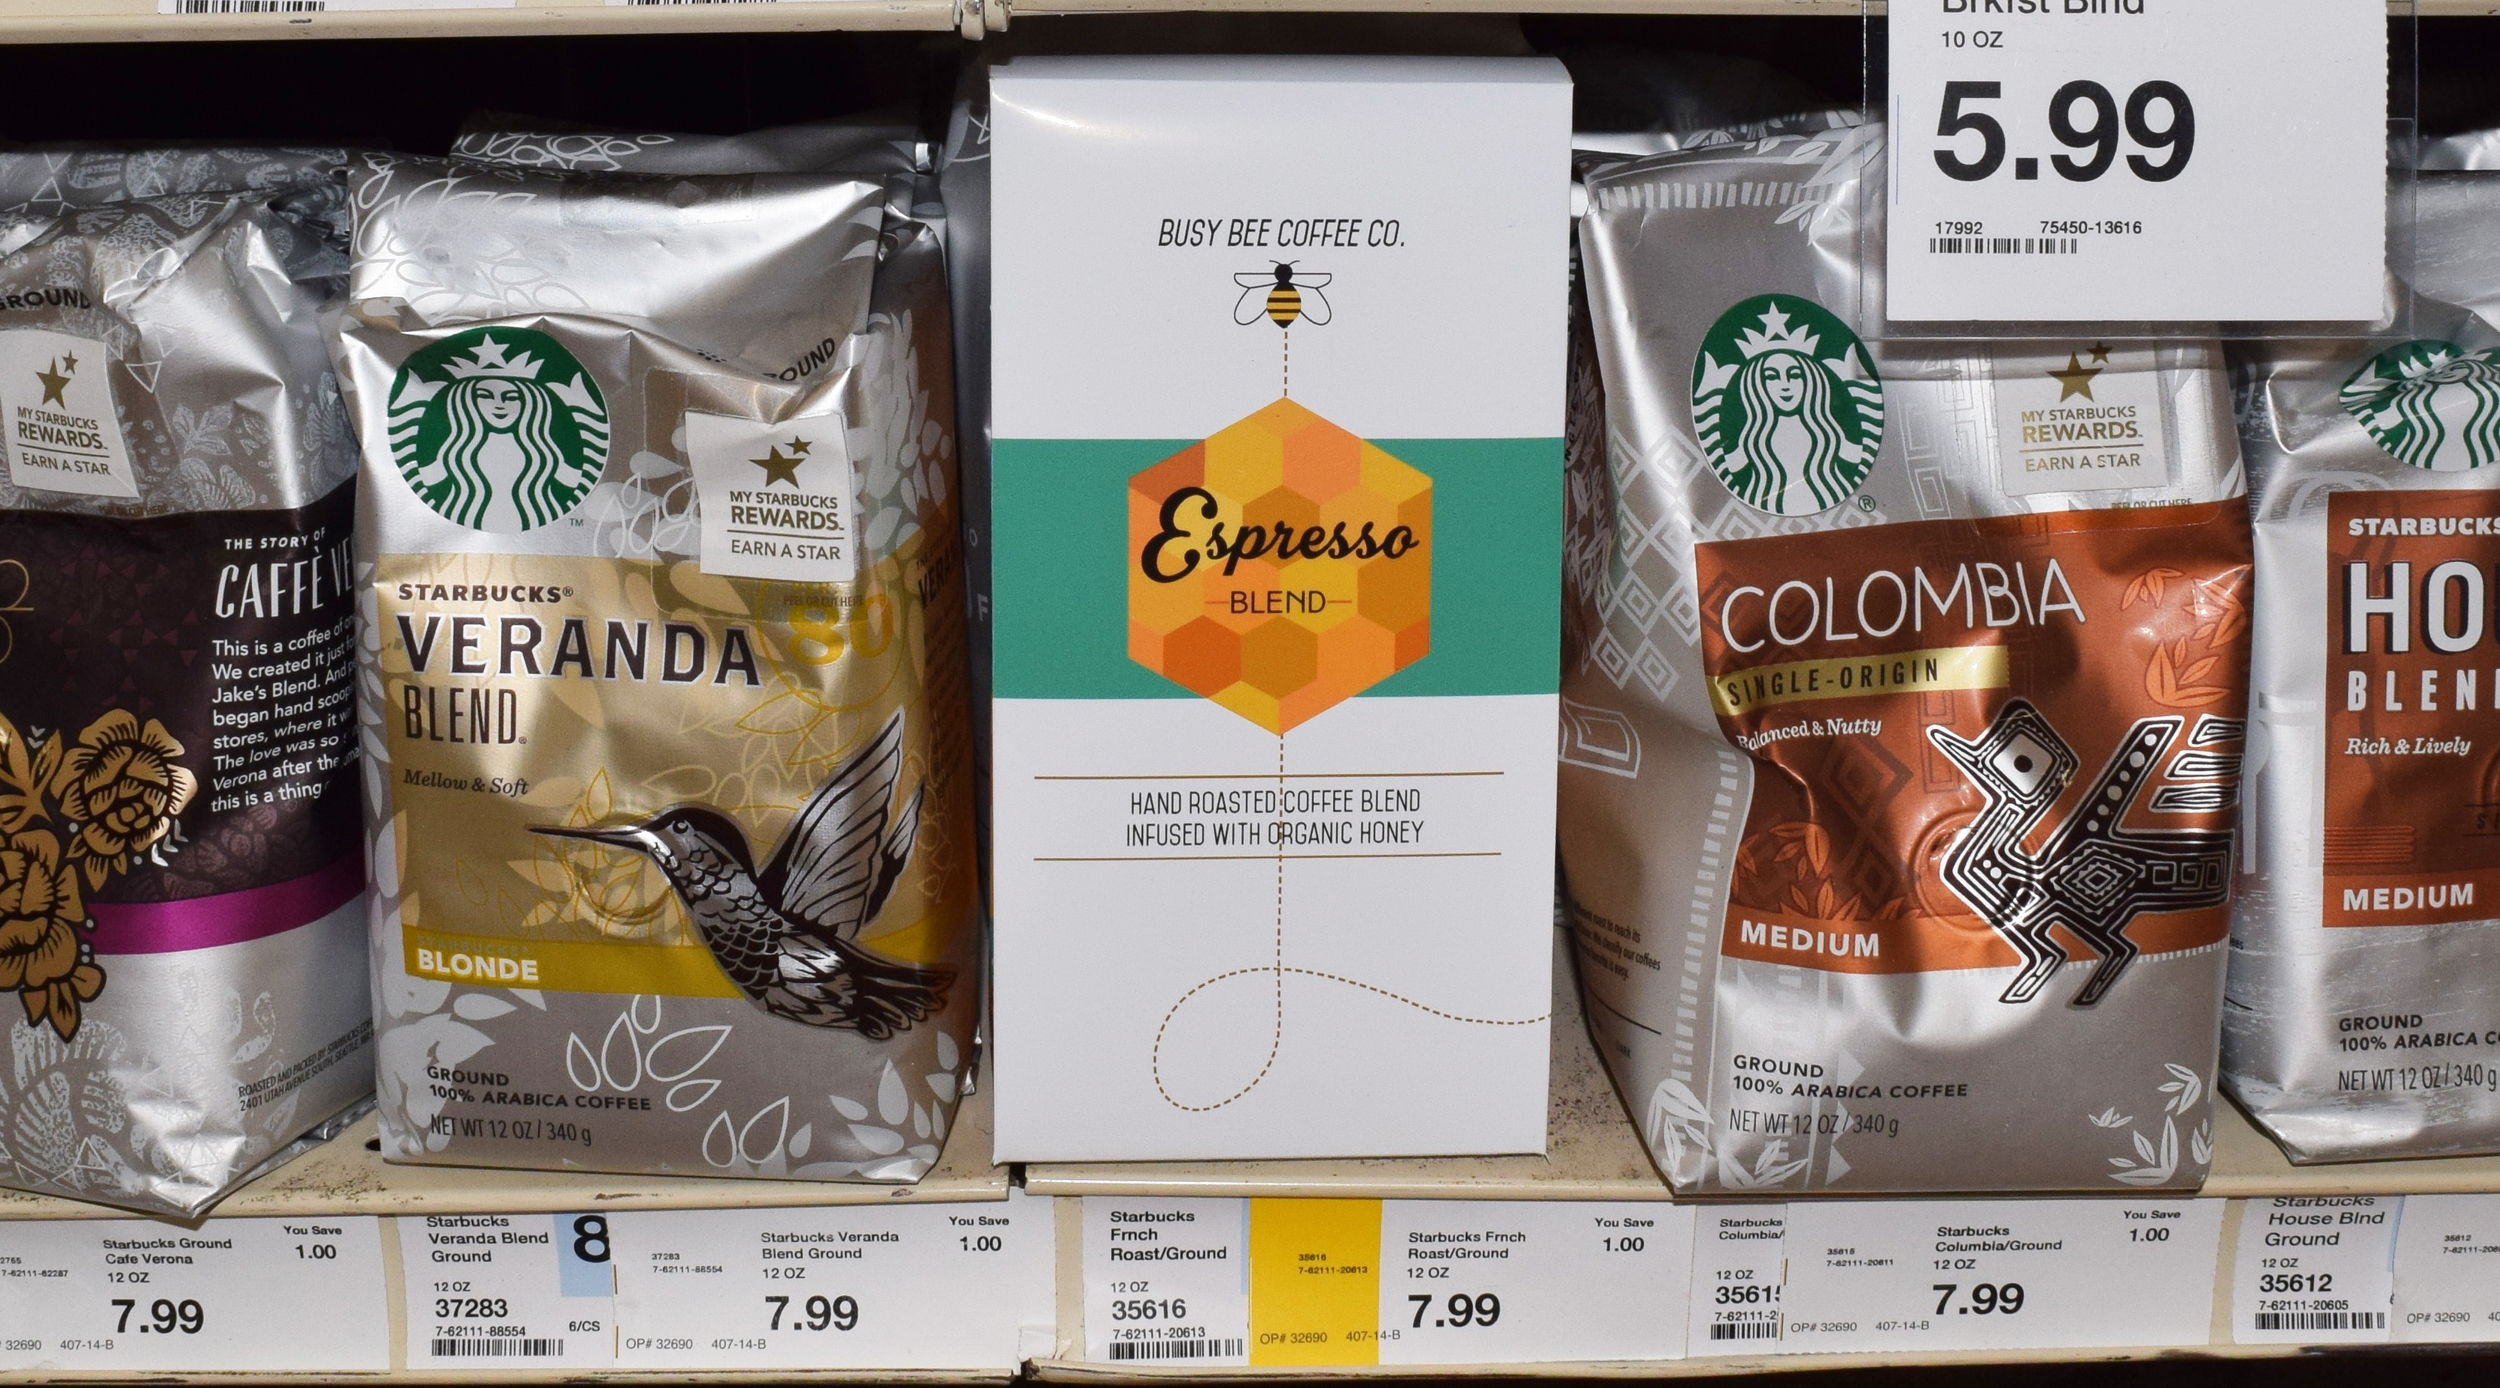 In store example of Busy Bee next to other products